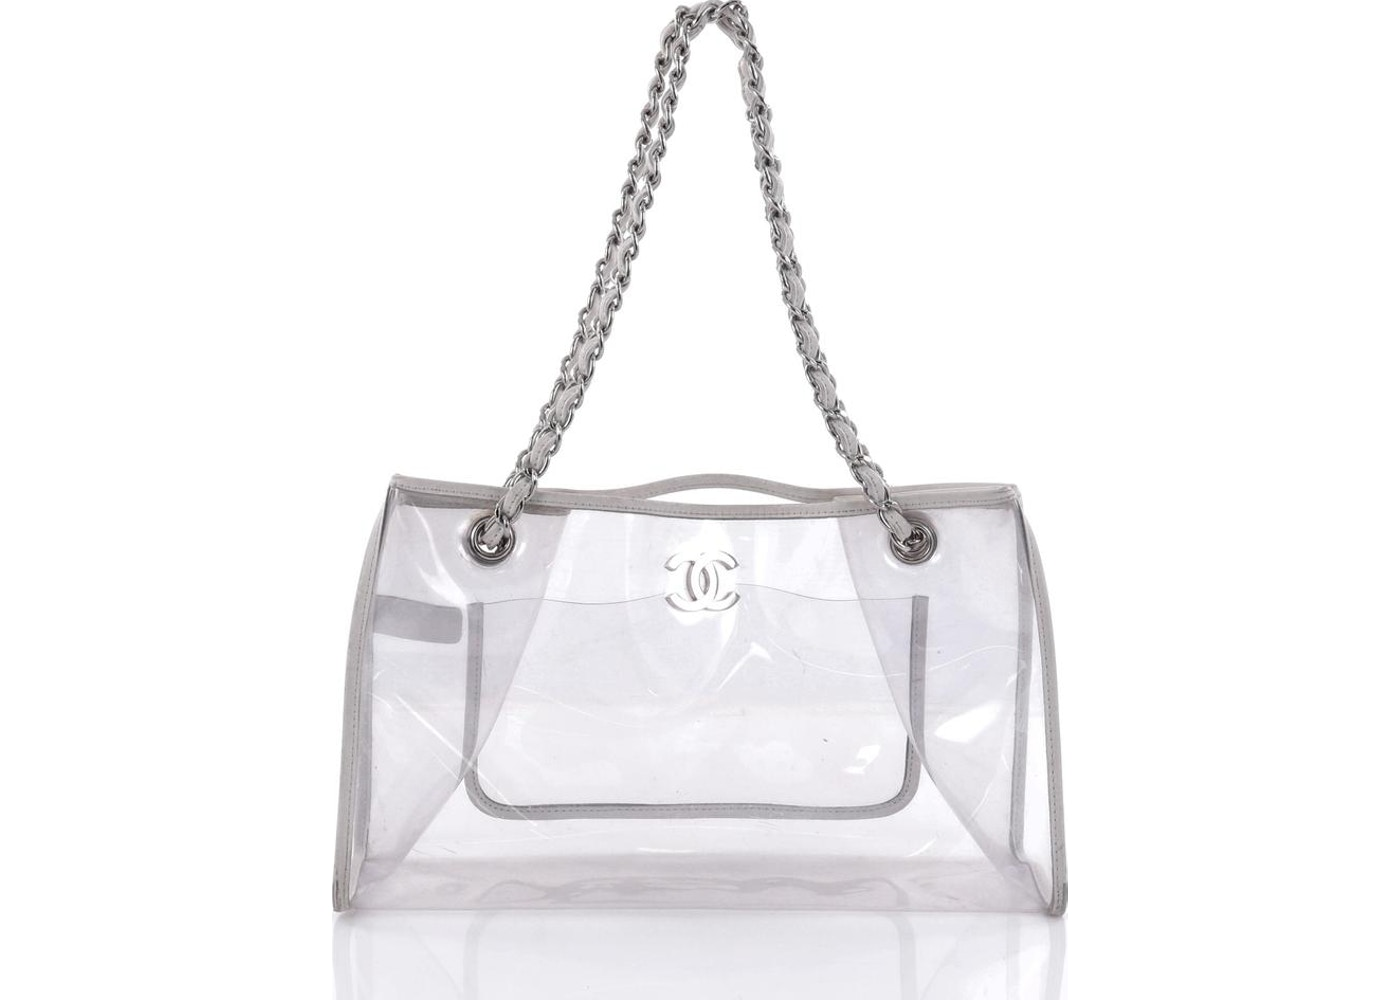 ddca6e982e44 Chanel Naked Tote PVC Large Clear White. PVC Large Clear White